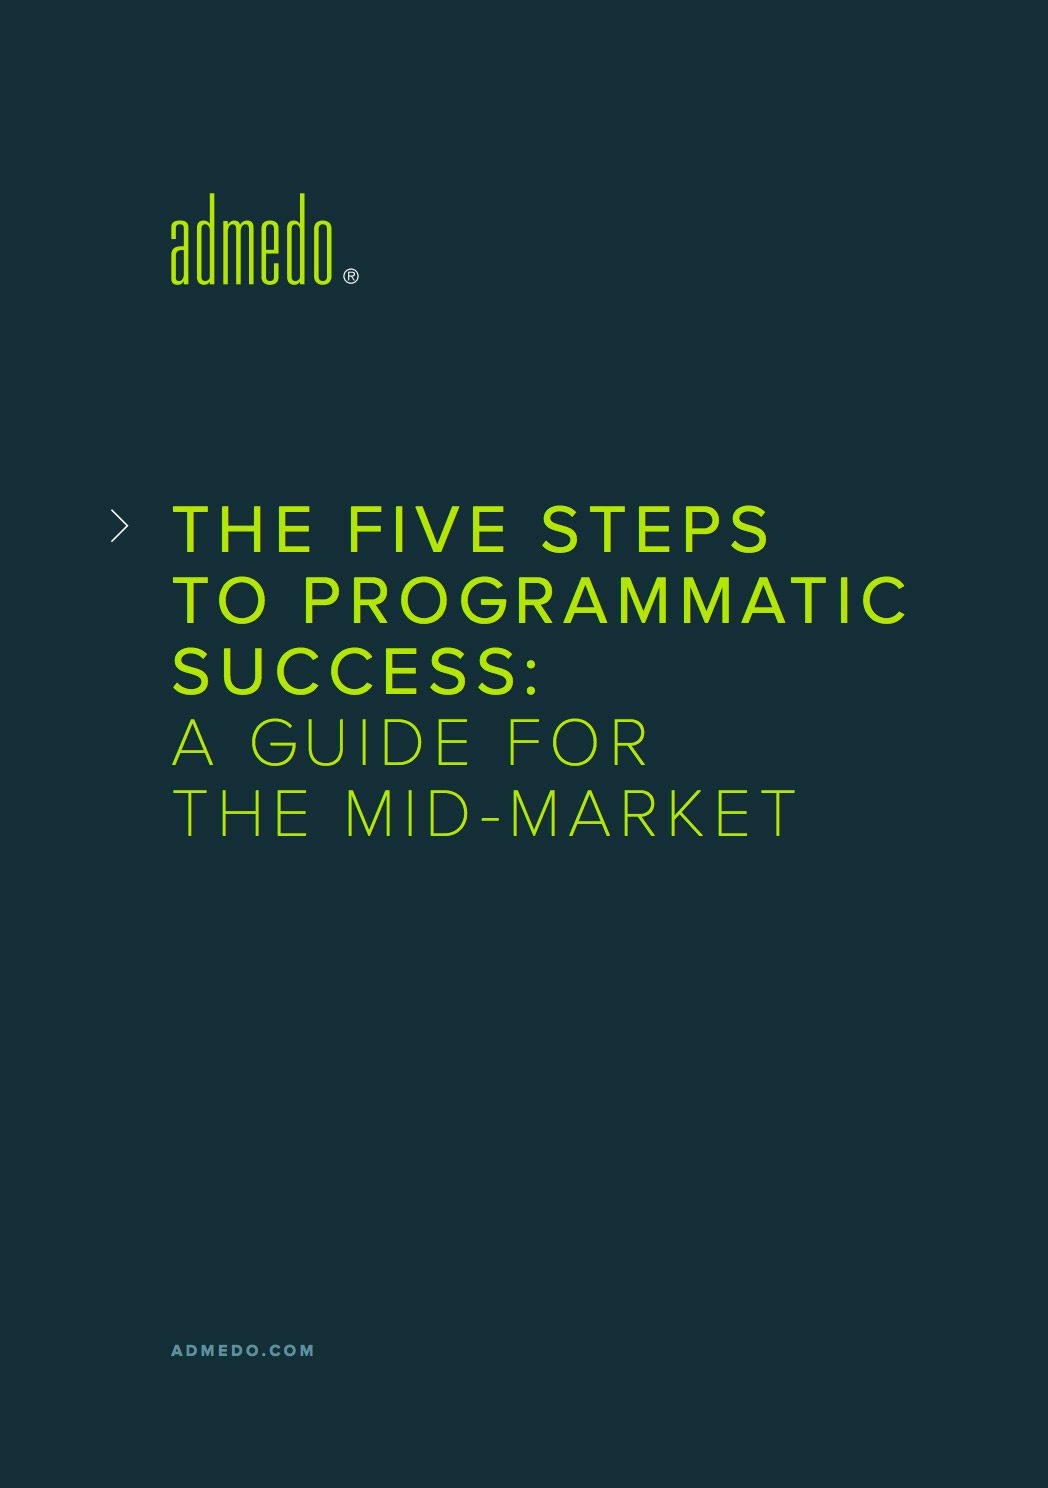 Five Steps to Programmatic Success